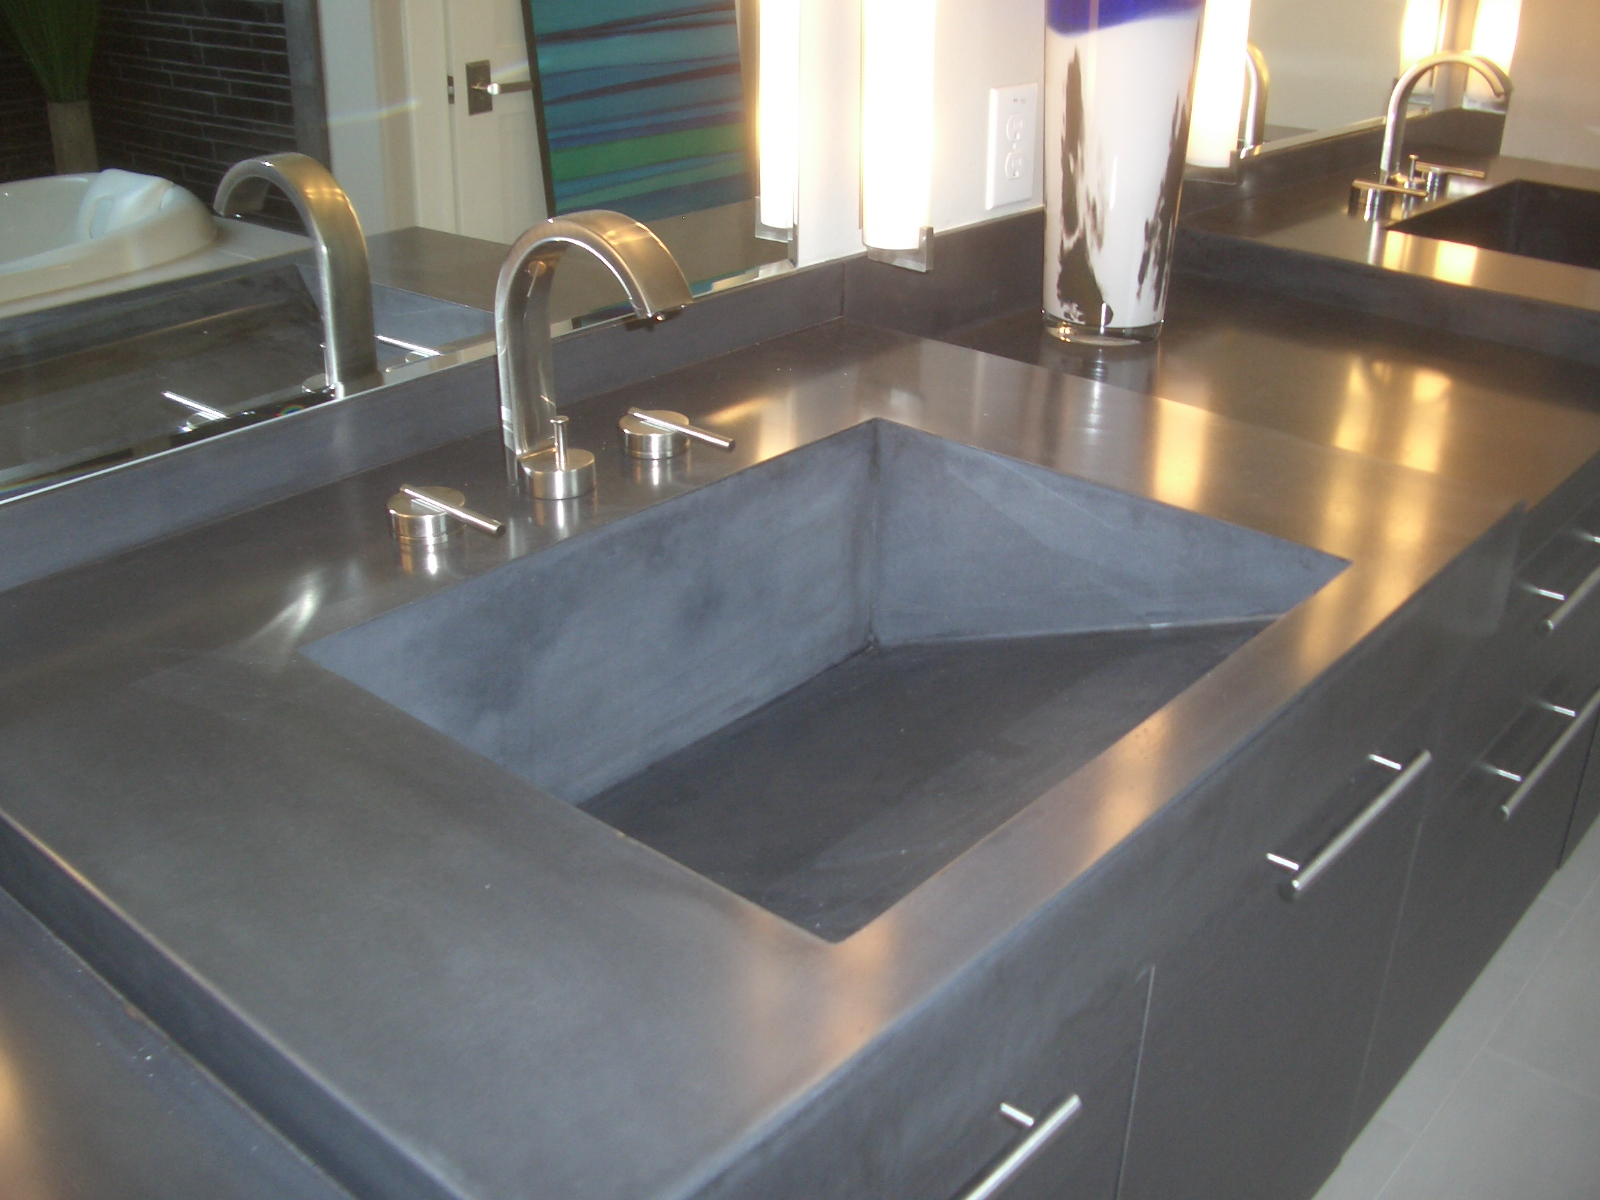 concrete kitchen sink redesign ideas 1000 43 images about on pinterest